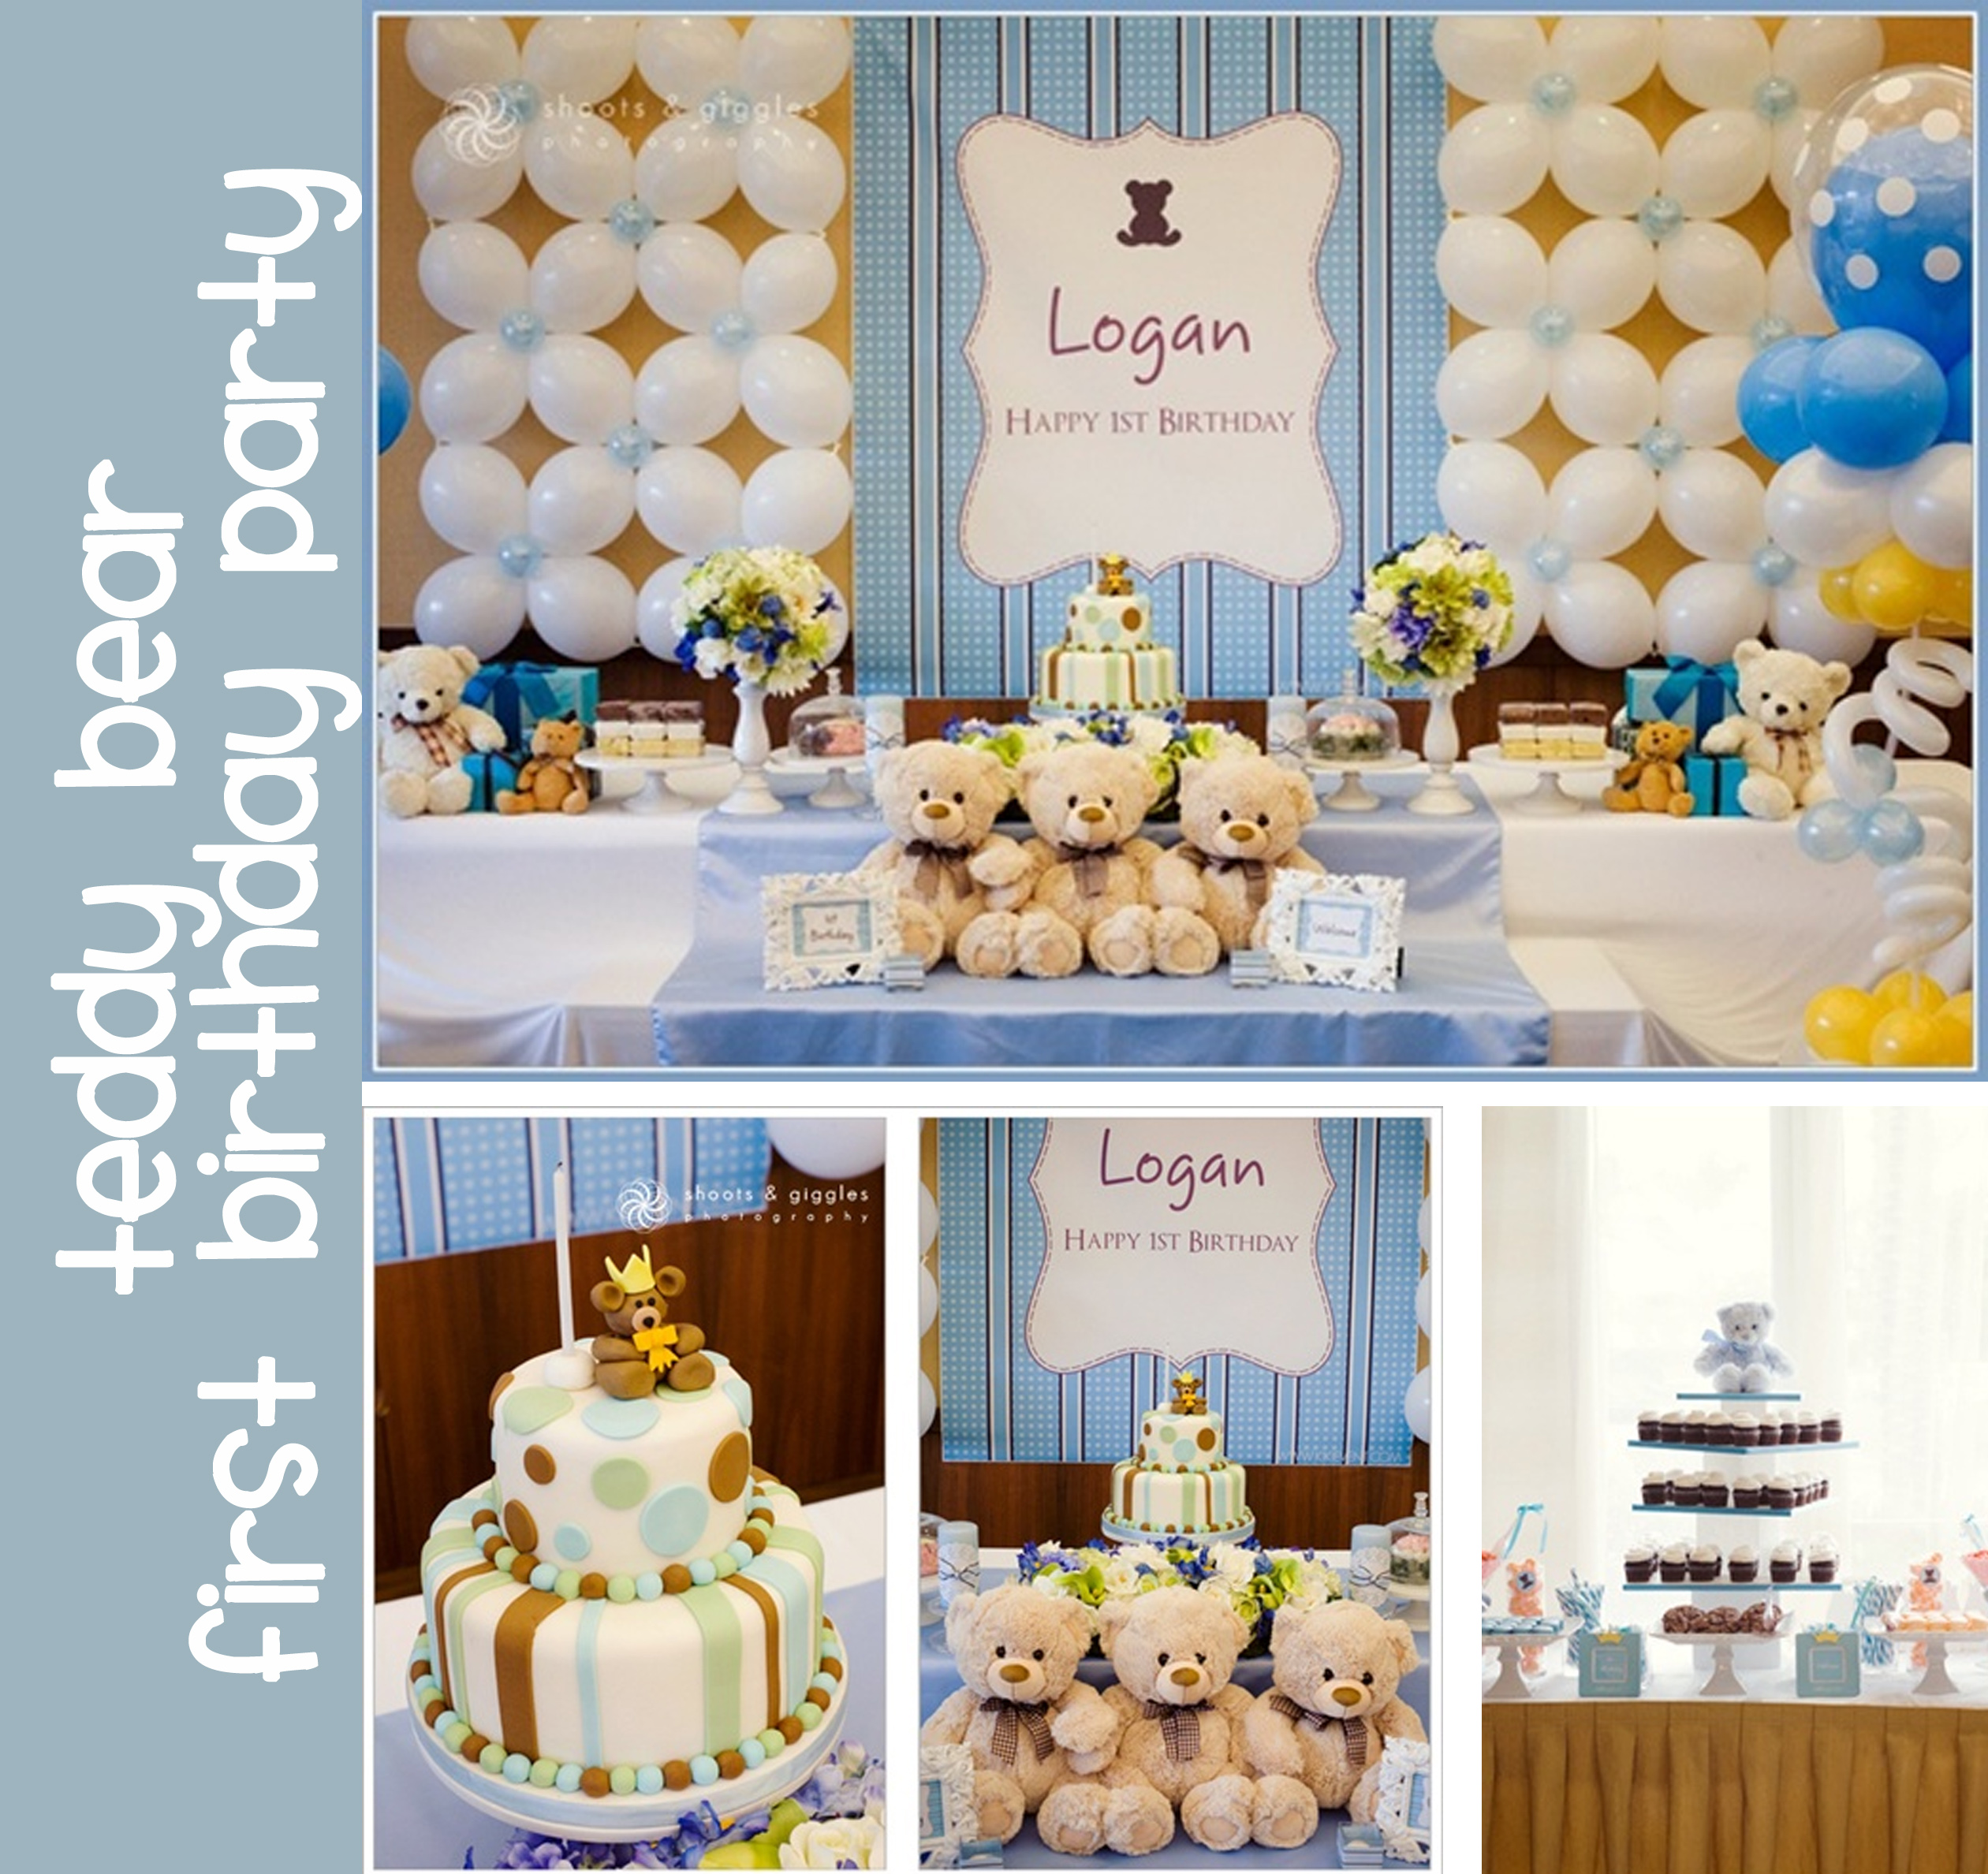 birthday theme party for baby boy ; 52fd3fb1724a49bed5f36273e84c837c